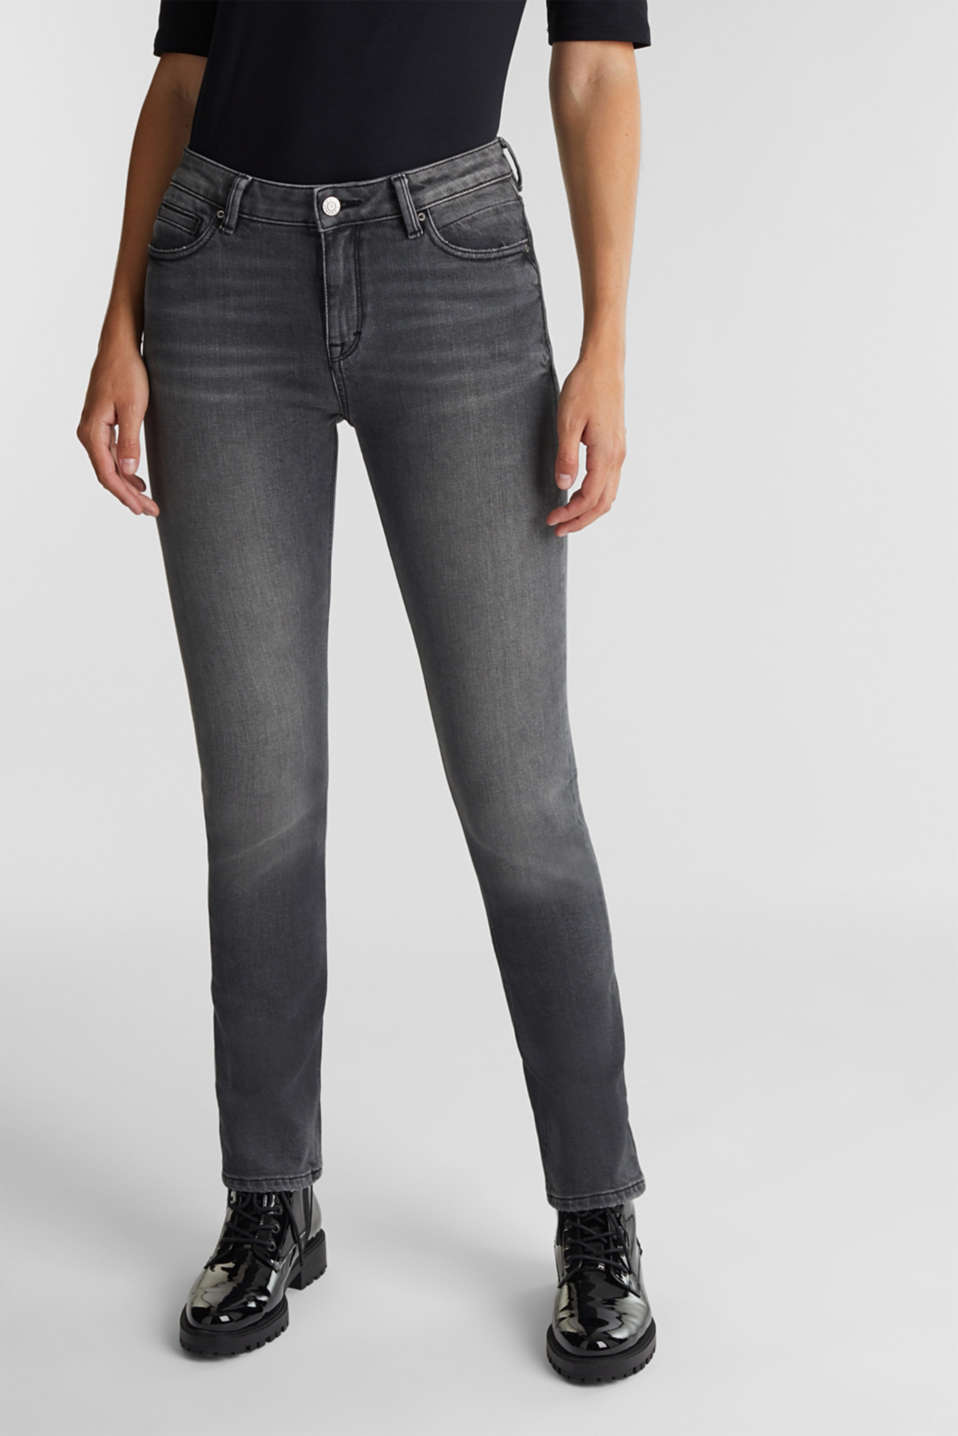 Esprit - Washed-out jeans, organic cotton